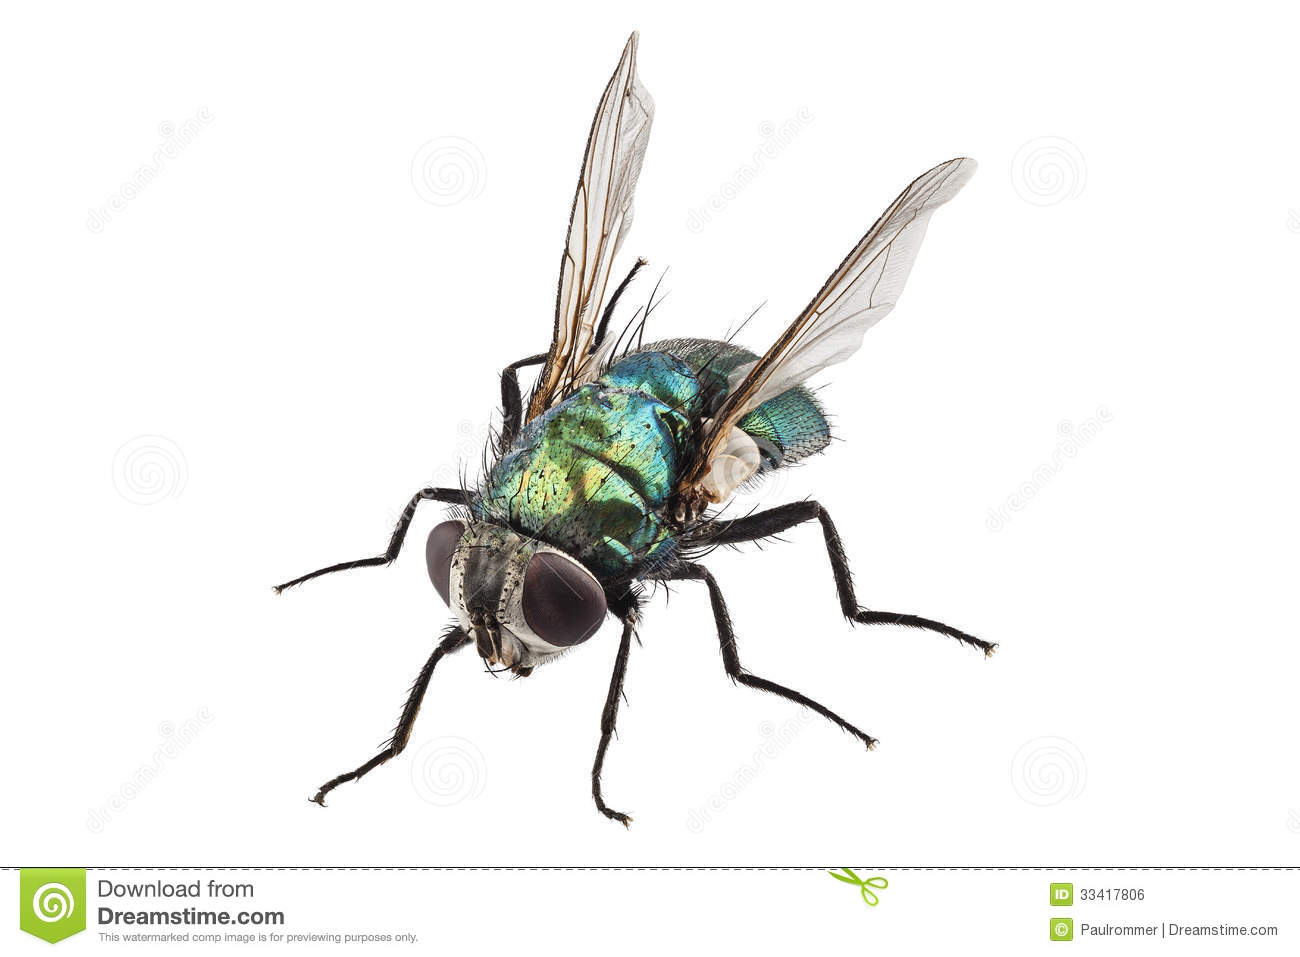 Blowfly clipart #19, Download drawings